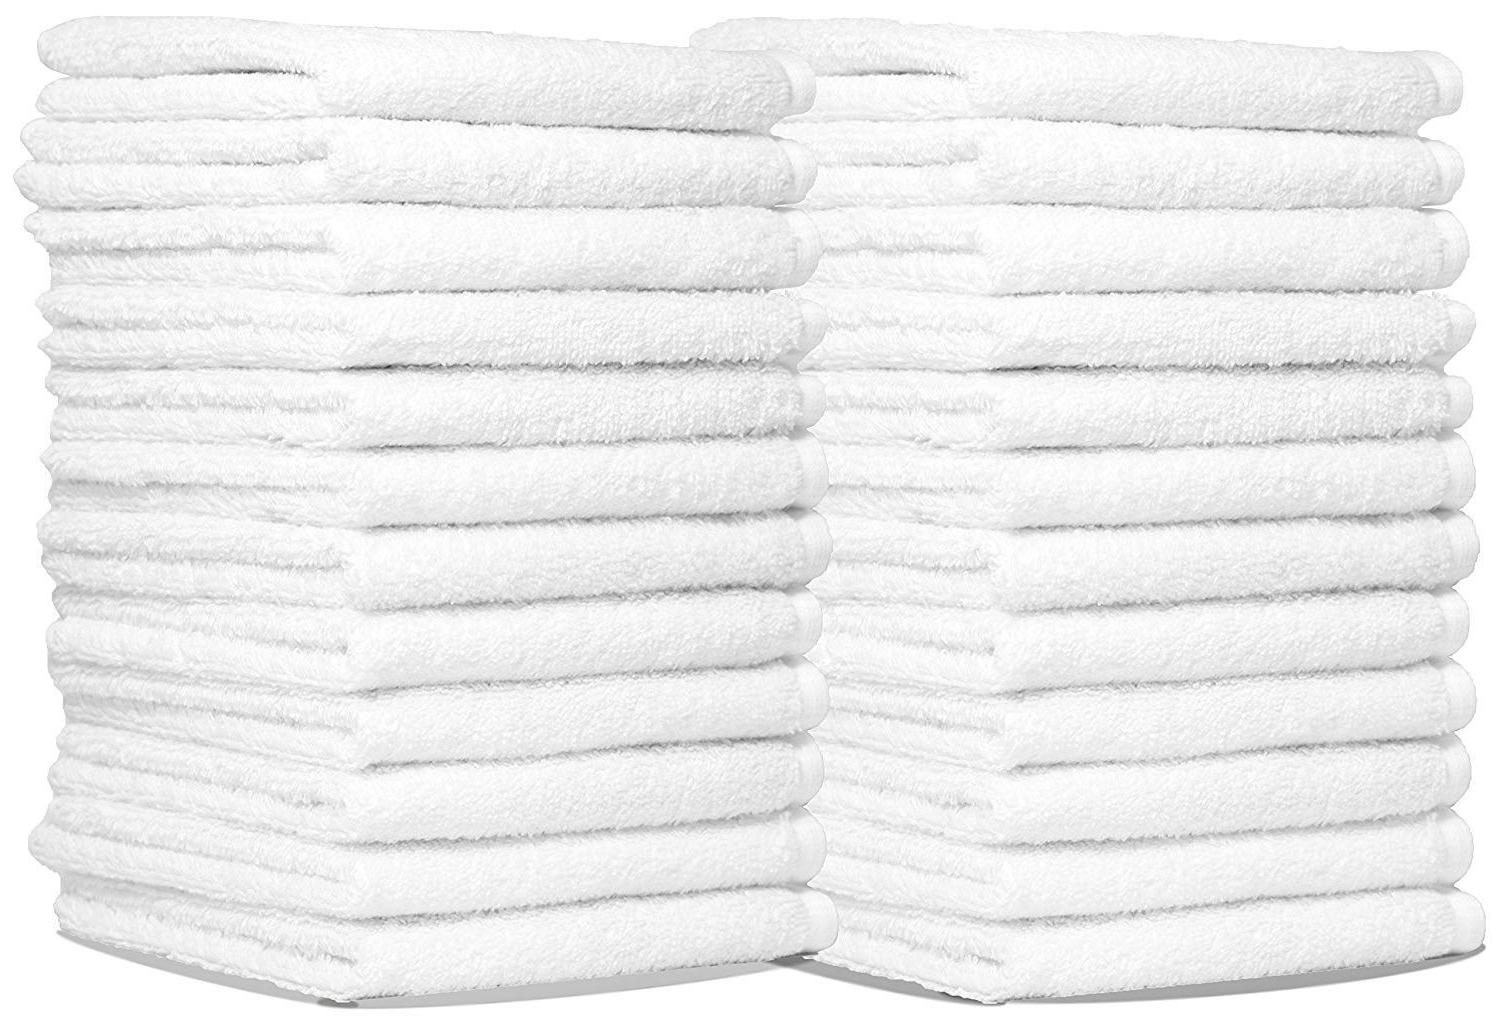 24 NEW WHITE SOFT HAND TOWELS 20X35 100% COTTON WHOLESALE LO